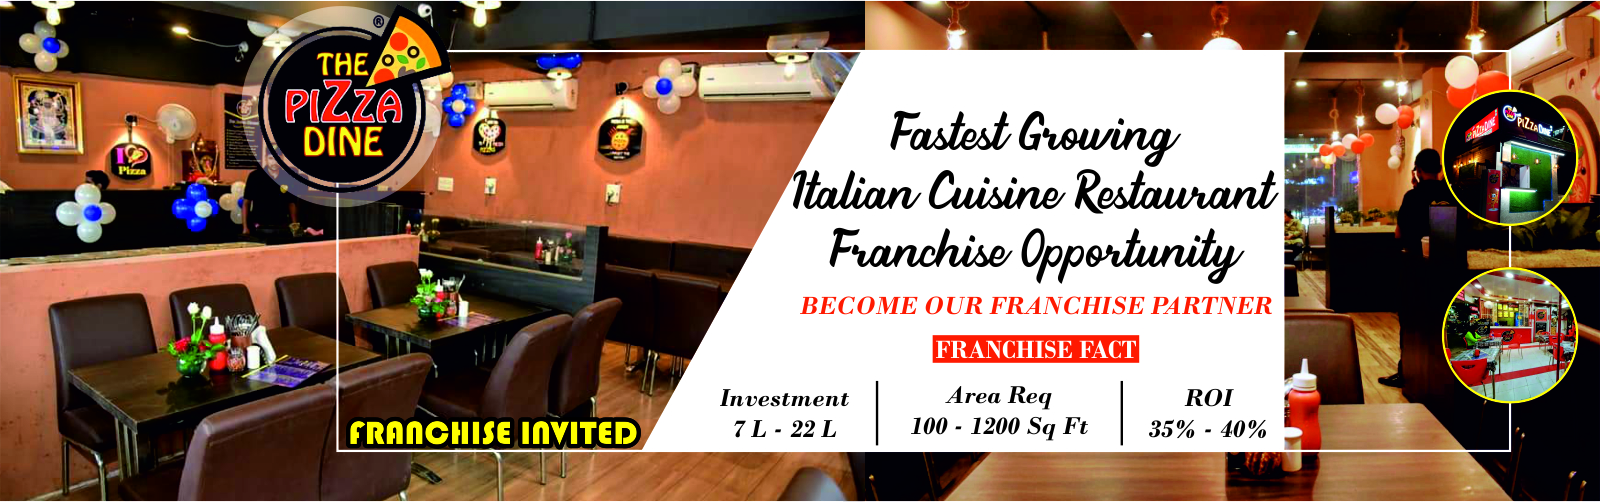 admin/photos/The Pizza Dine ( Fastest Growing Italian Cuisine Restaurant Chain )